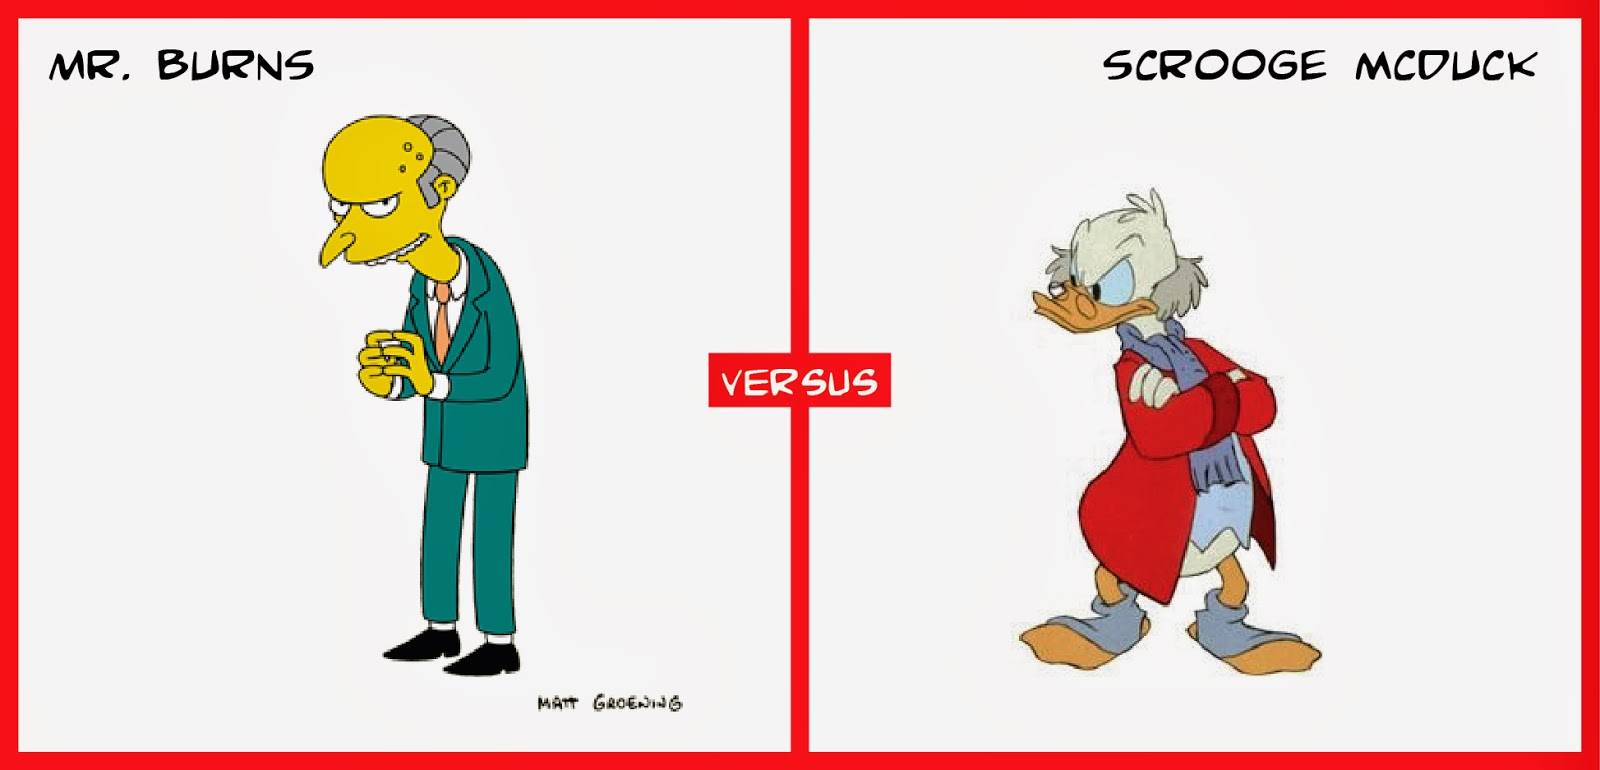 Scrooge McDuck Mr. Burns